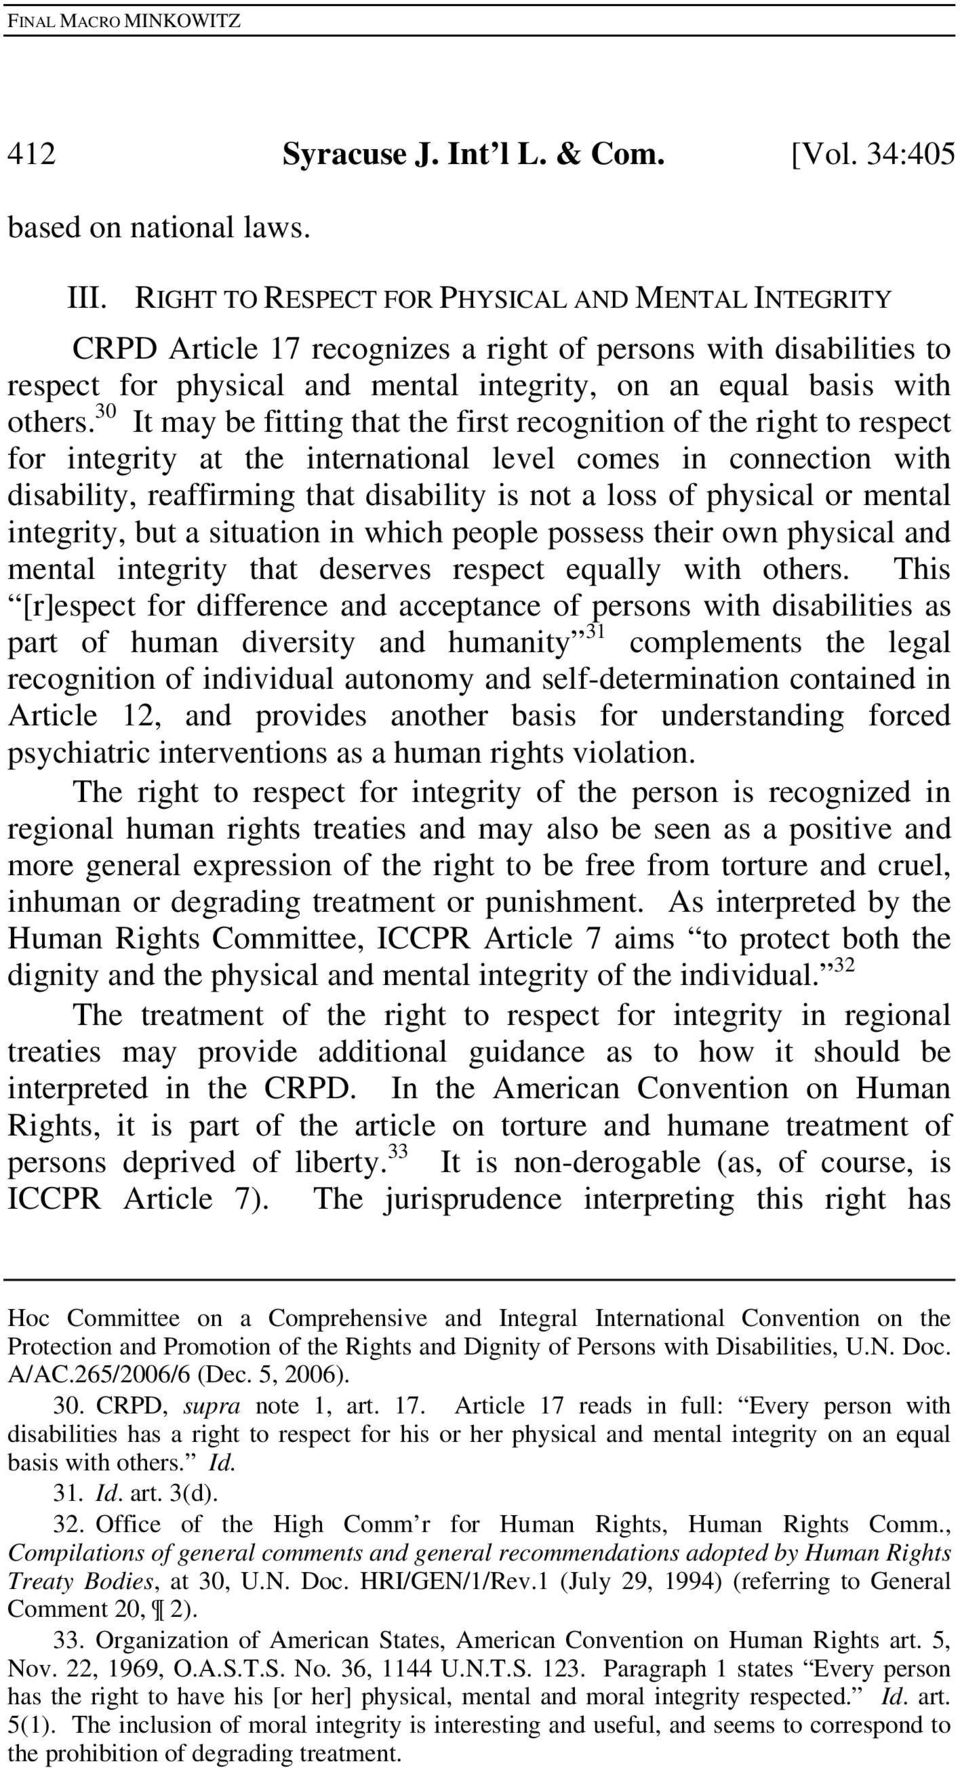 30 It may be fitting that the first recognition of the right to respect for integrity at the international level comes in connection with disability, reaffirming that disability is not a loss of